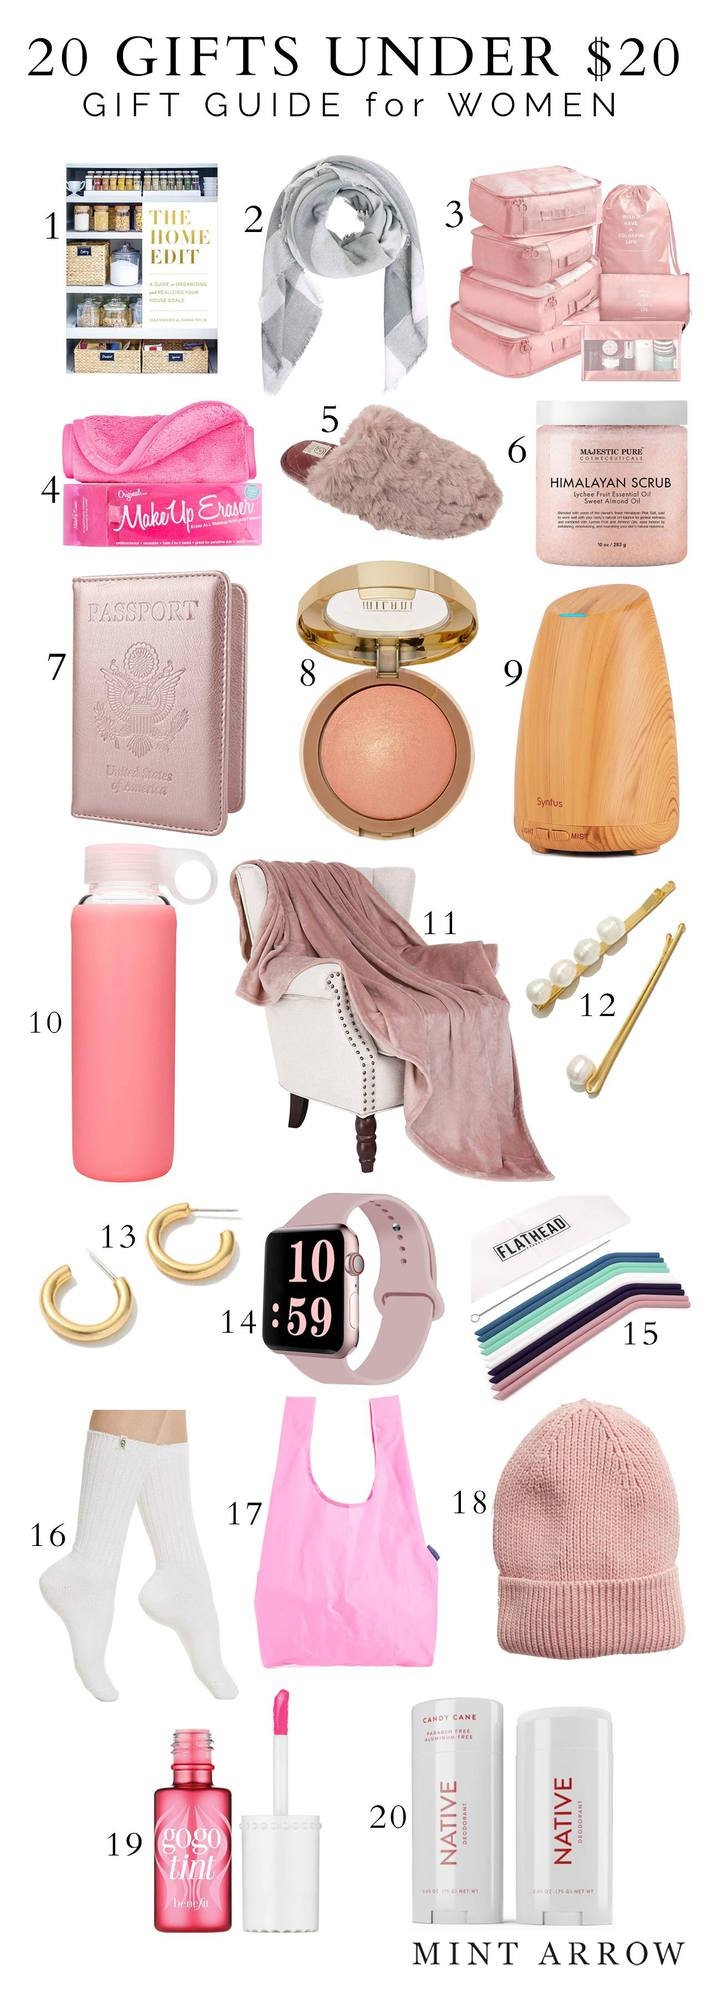 Christmas Gifts For Her Under 20 What Are Your Suggestions For Christmas Gift Ideas For Her Costing Under 20